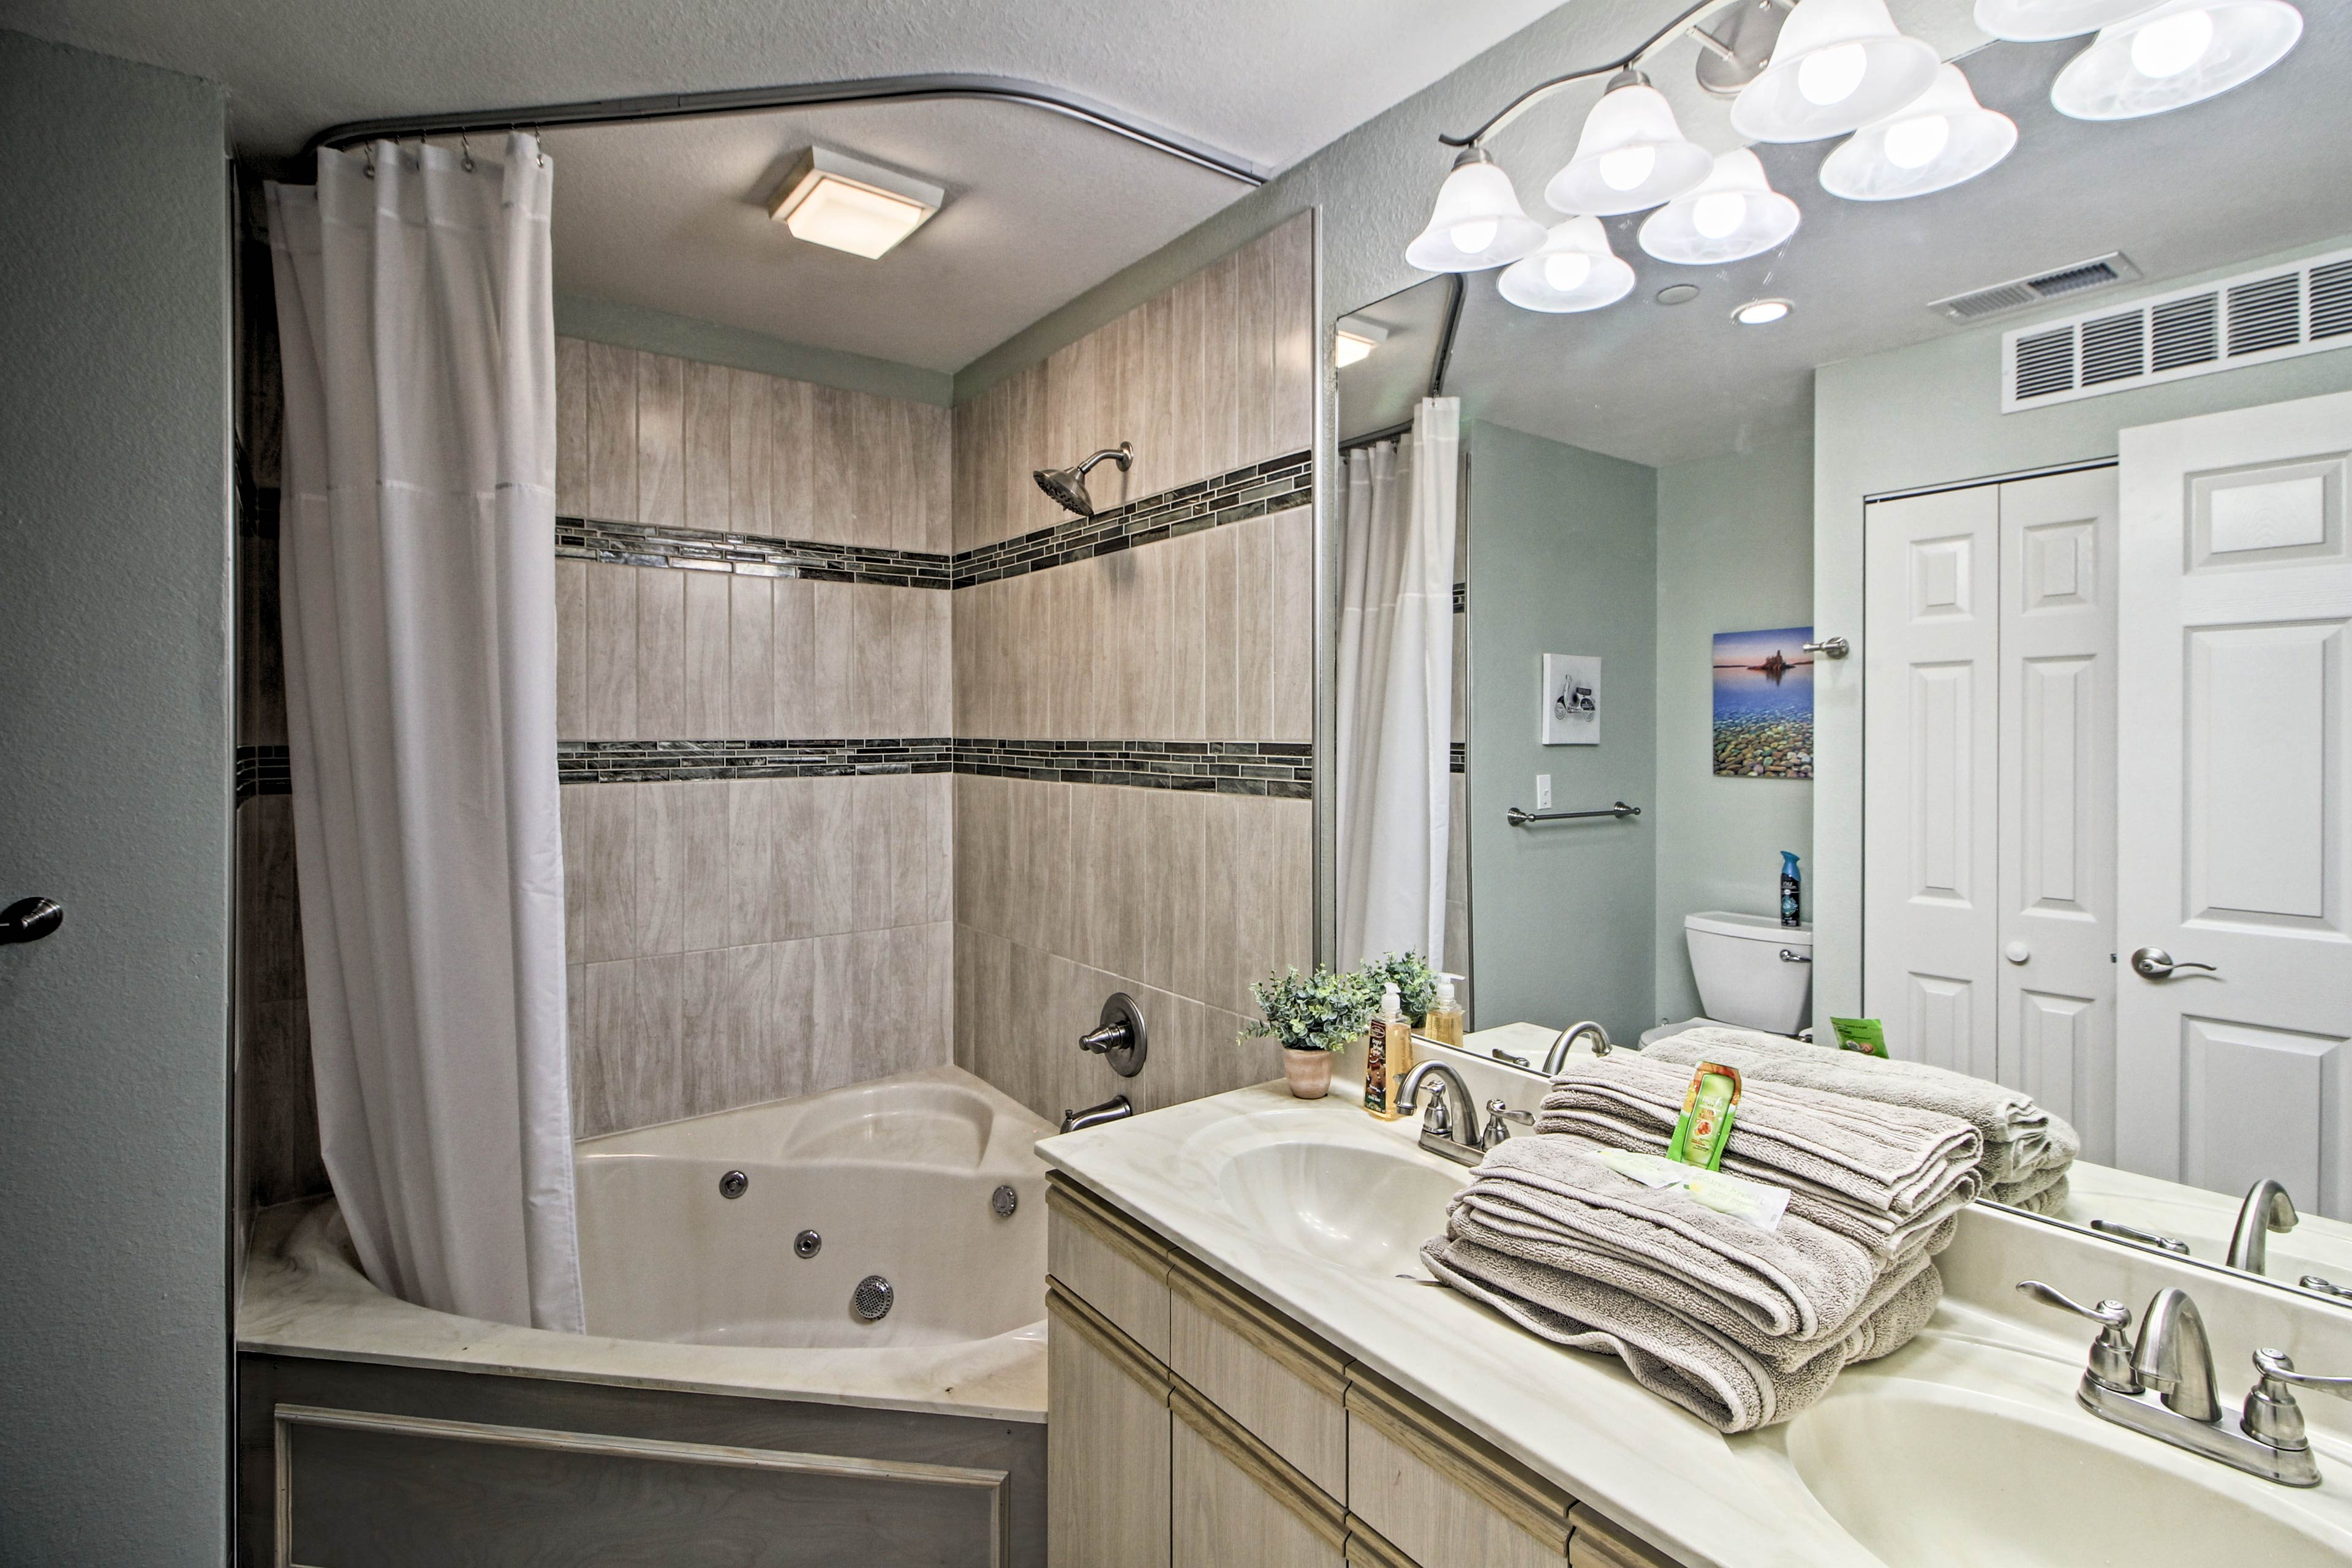 The second full bathroom is equipped with a luxurious shower/tub combo!